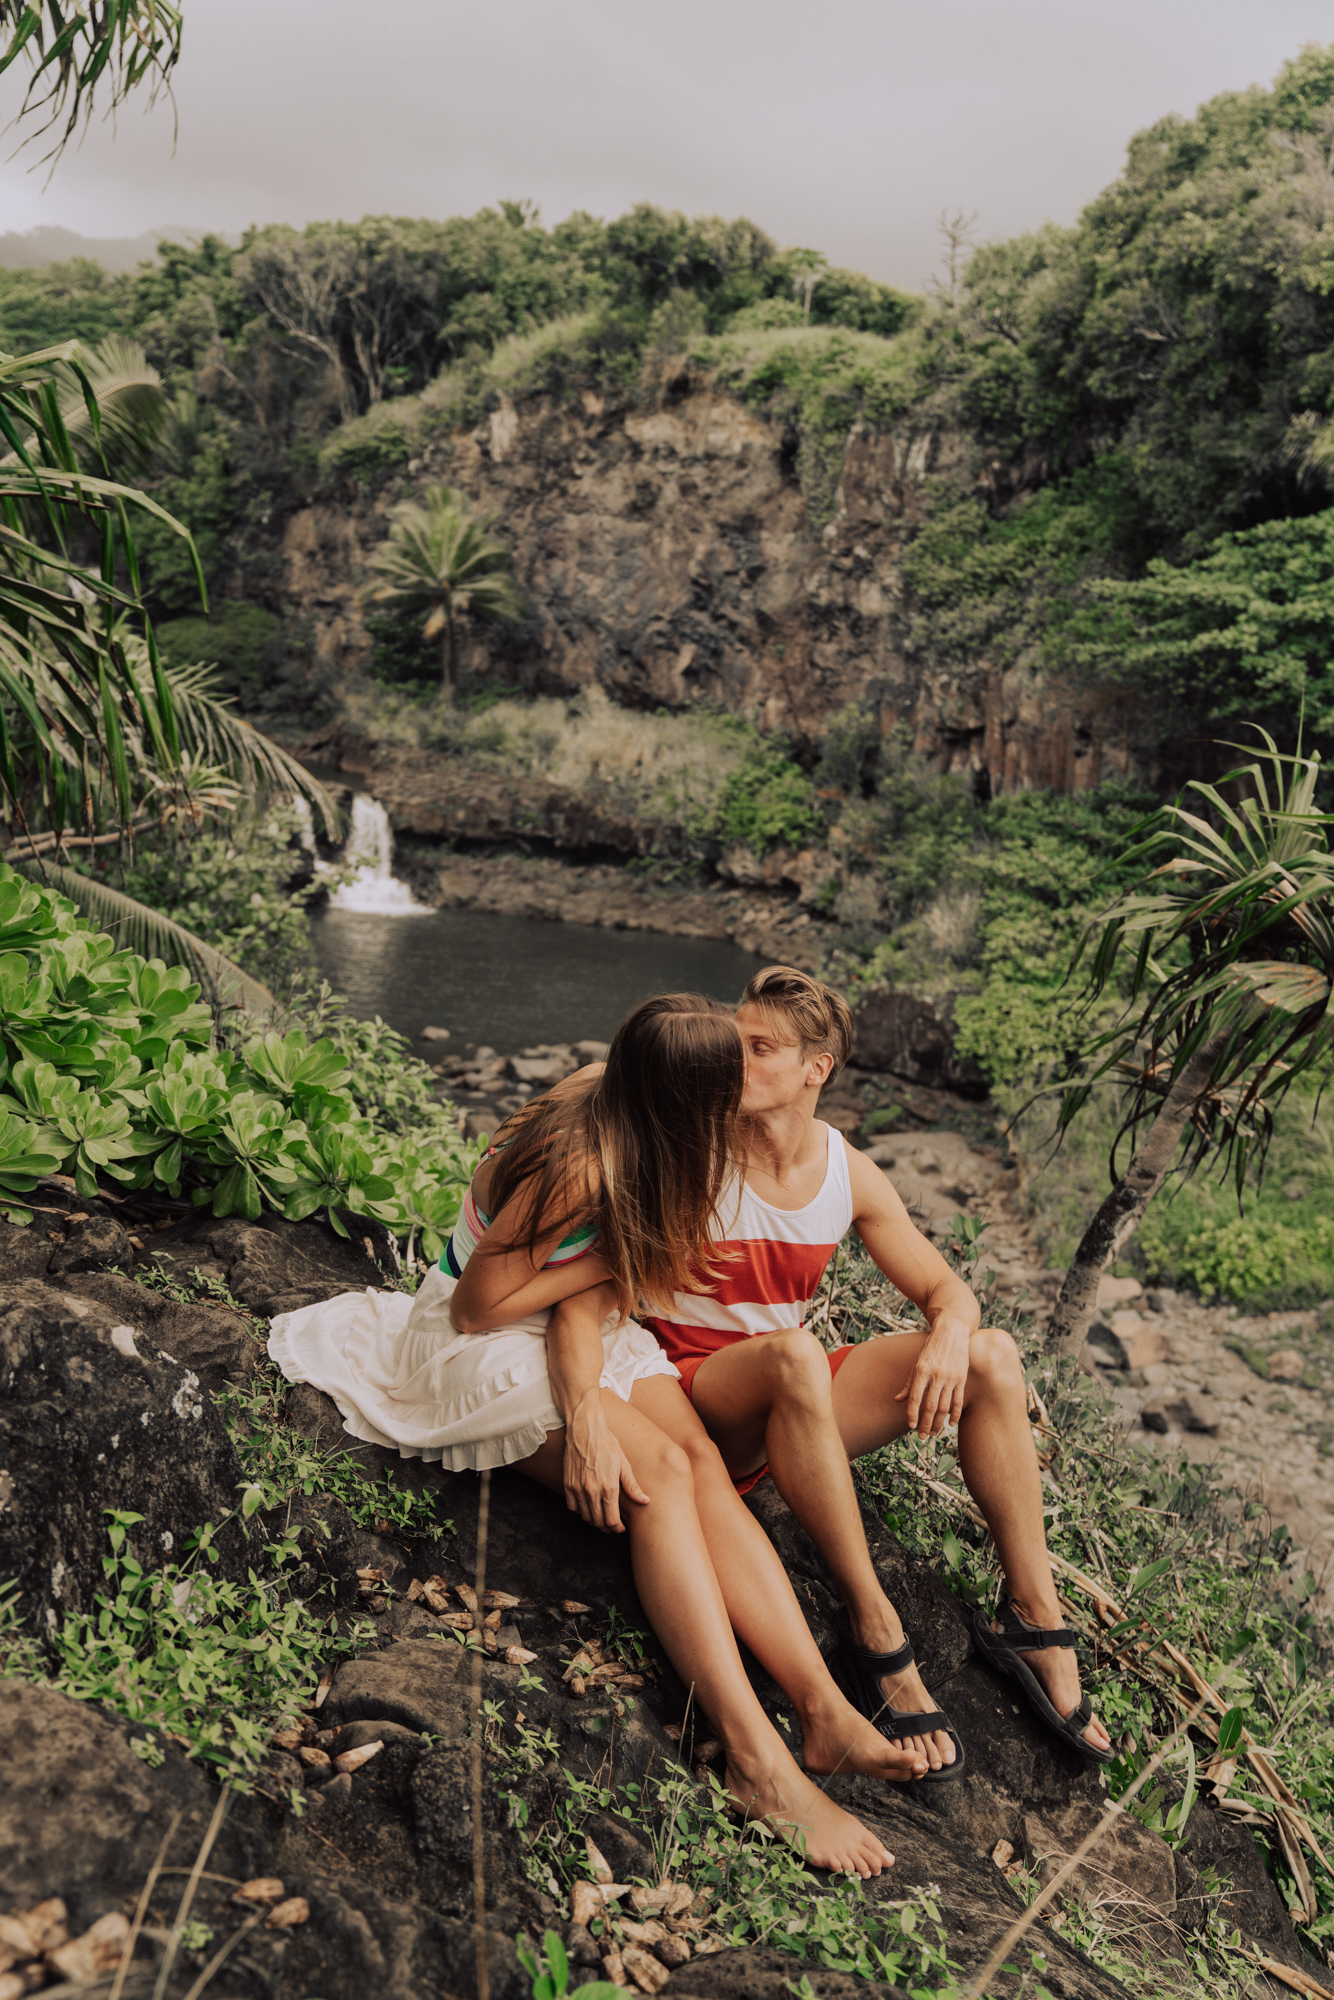 man and women kissing with a waterfall and palm trees in the background.